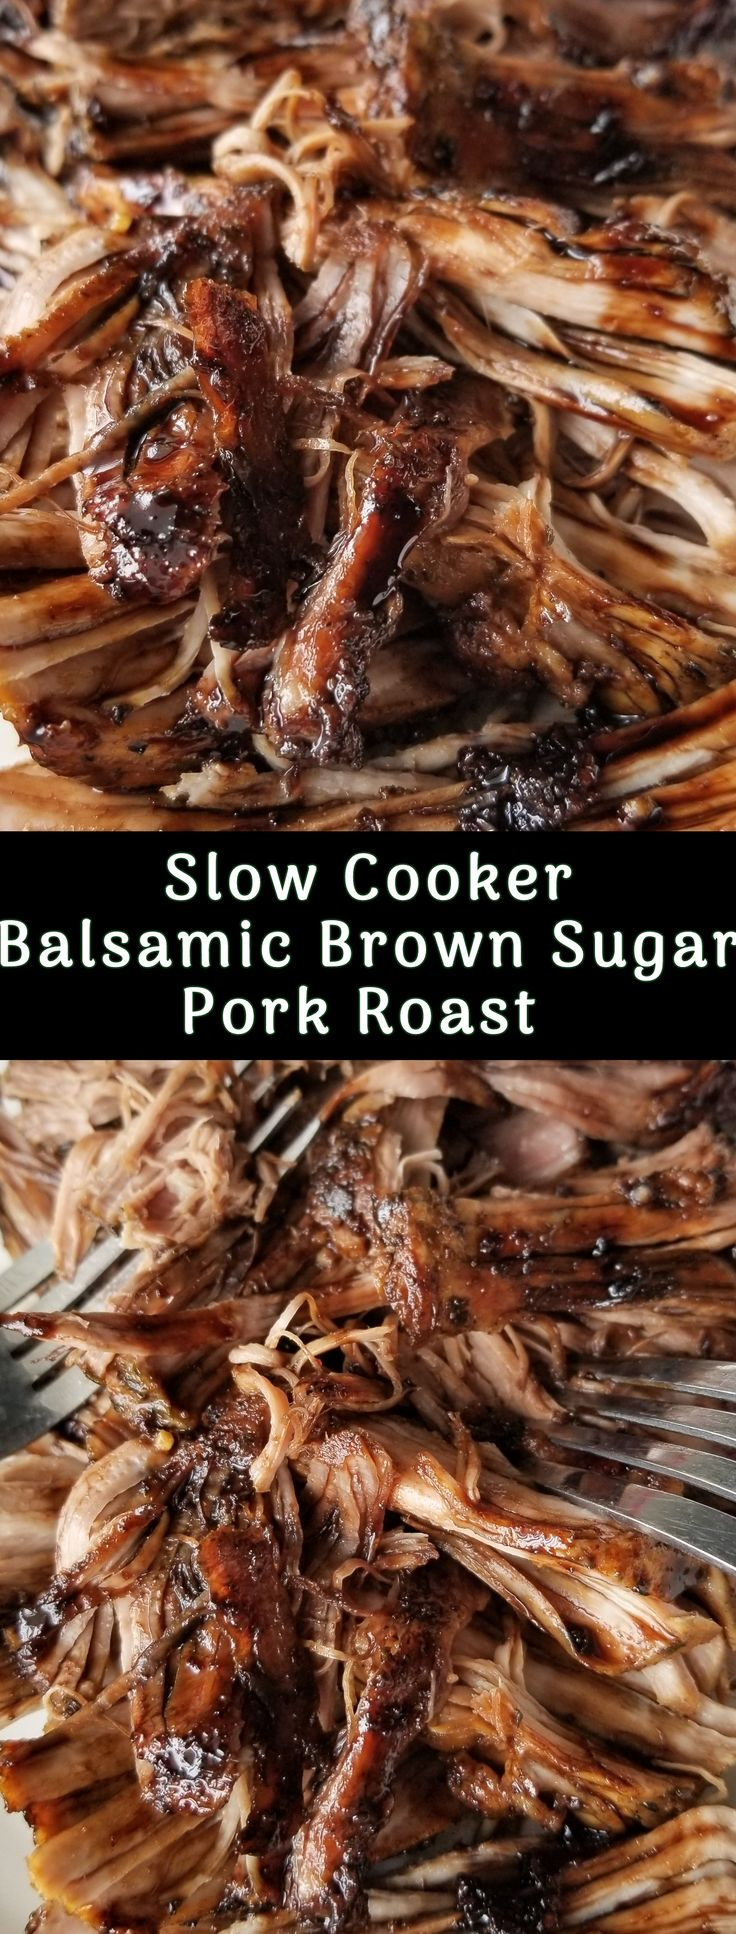 Slow Cooker Balsamic Brown Sugar Pork Roast    – Amanda Cooks & Styles Blog